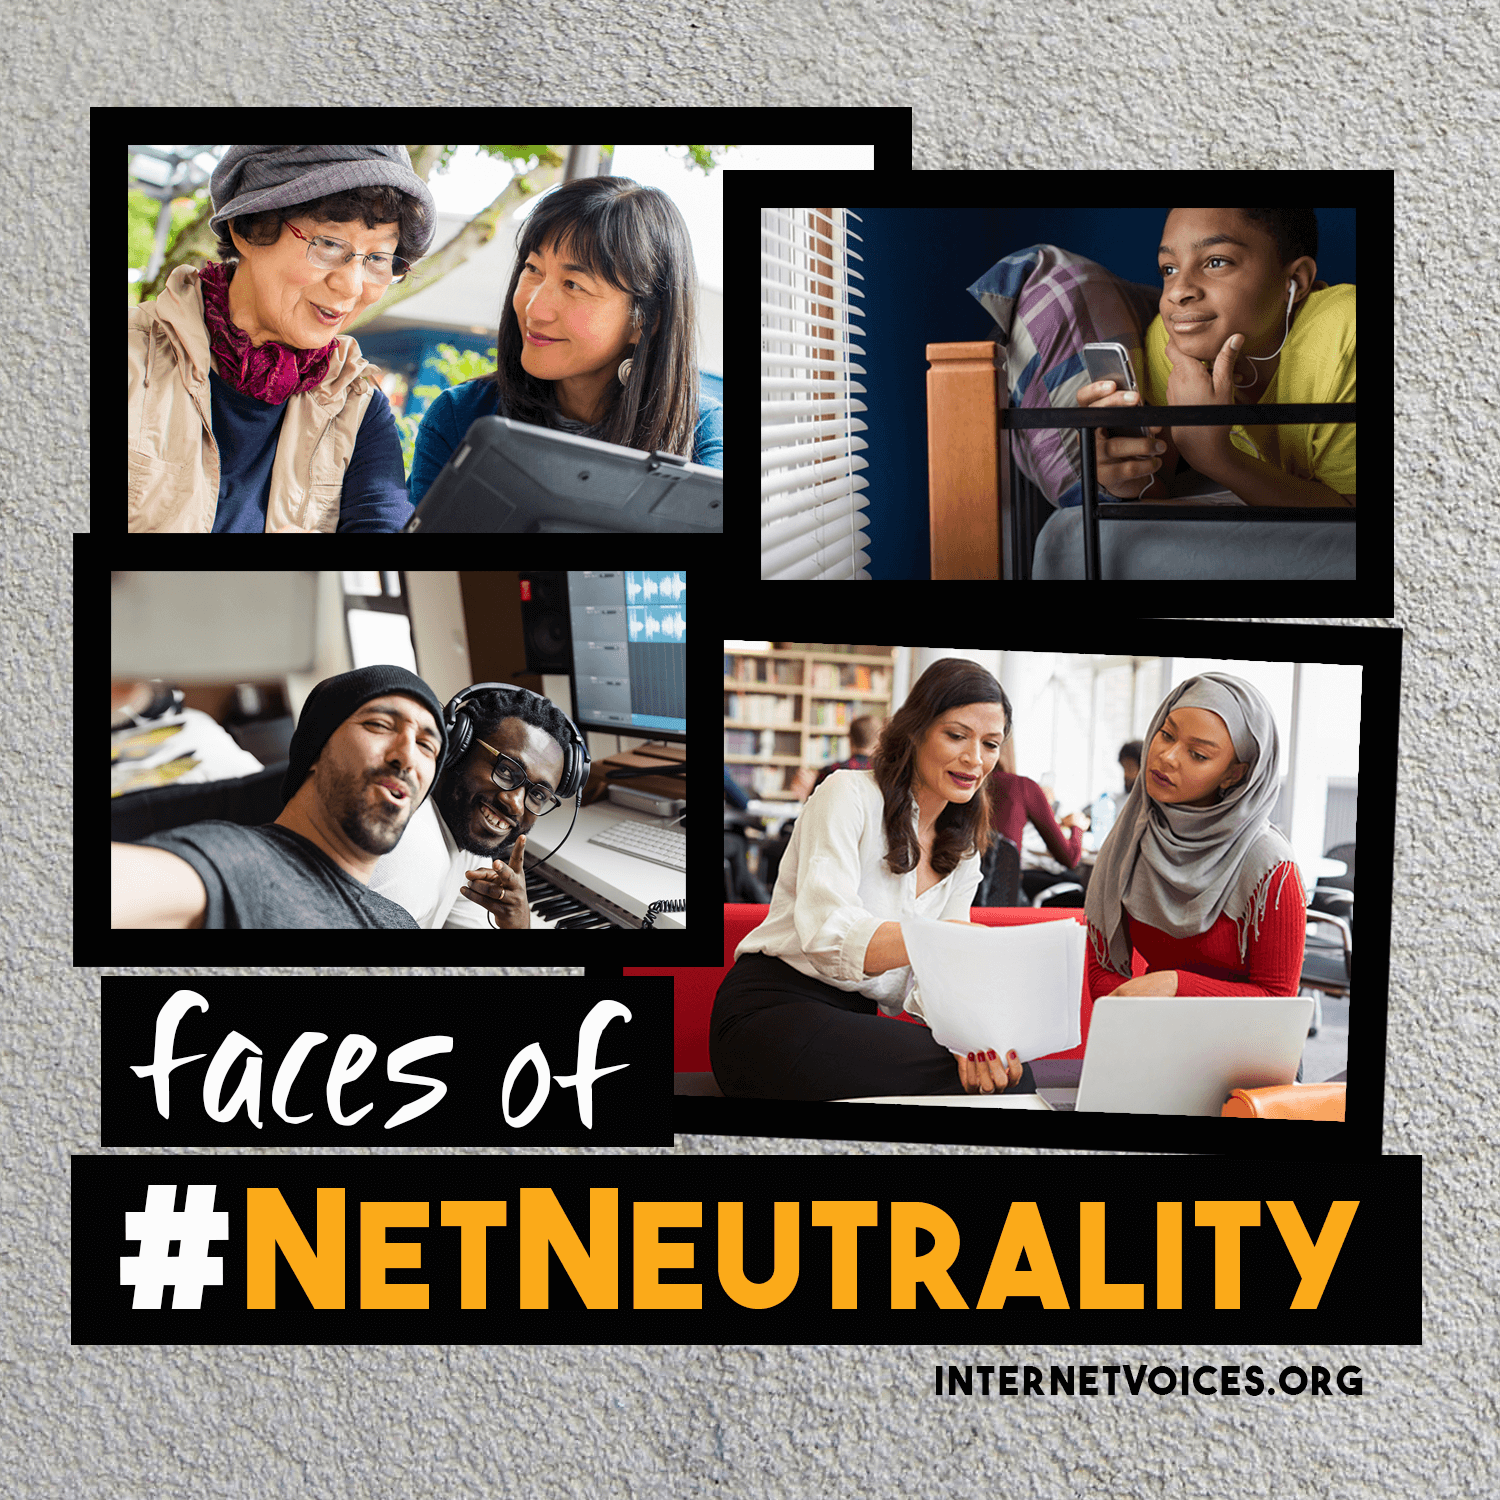 Don't believe major media outlets' claims that Net Neutrality is a battle between the CEOs of companies like Amazon and Netflix.   --    We're here to set the record straight: it's about people, not corporations.